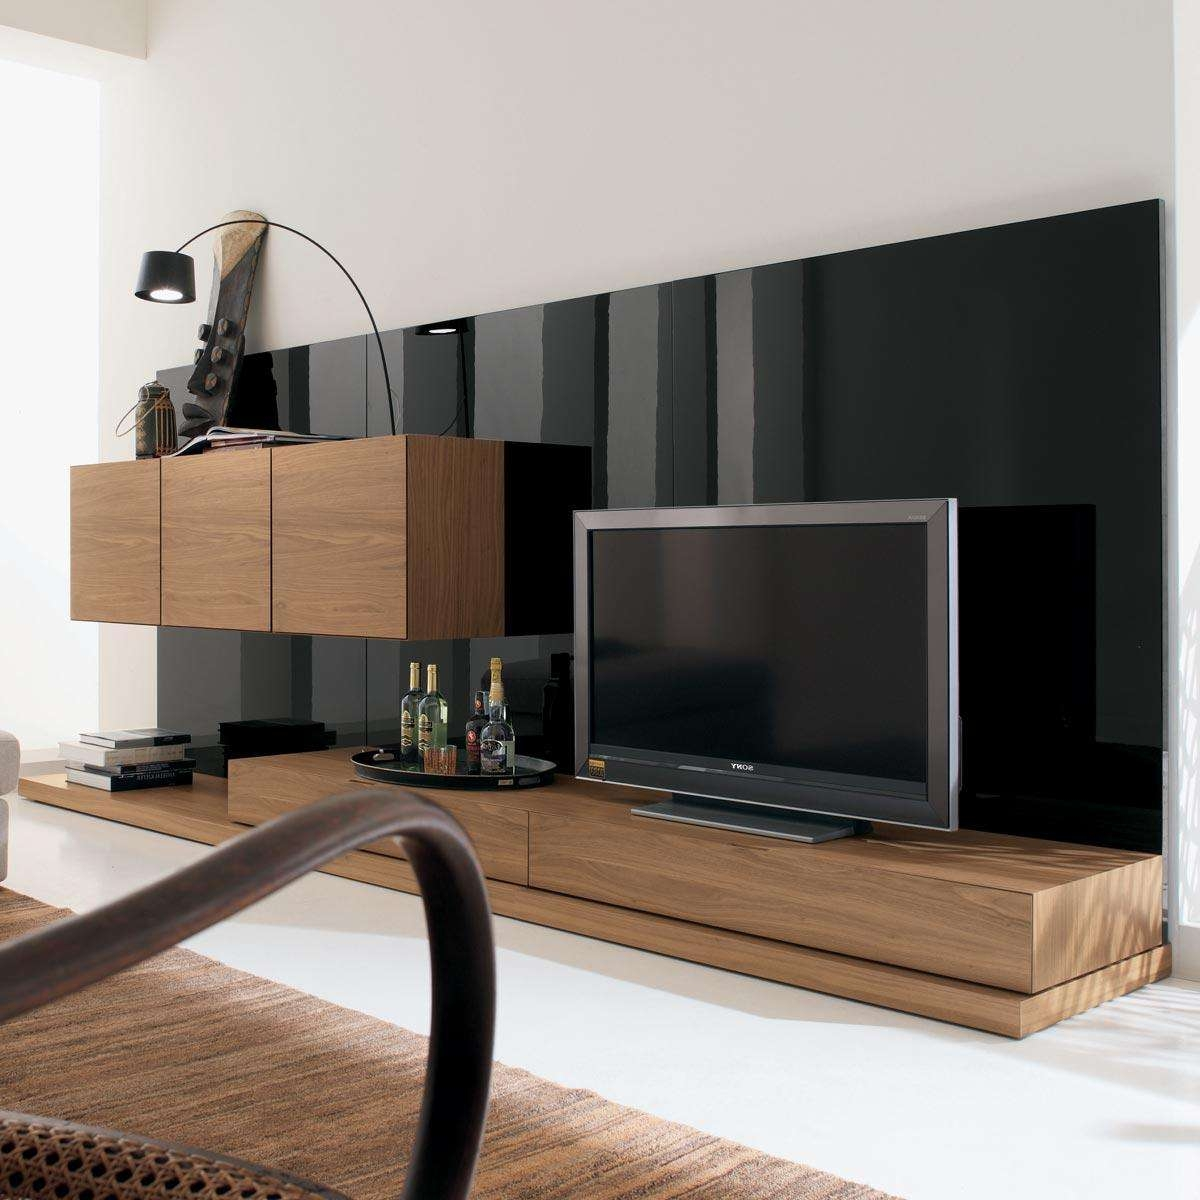 Modern Nature Wood Big Screen Tv Stand Wall Mounted Living Room Pertaining To Contemporary Tv Cabinets (View 18 of 20)